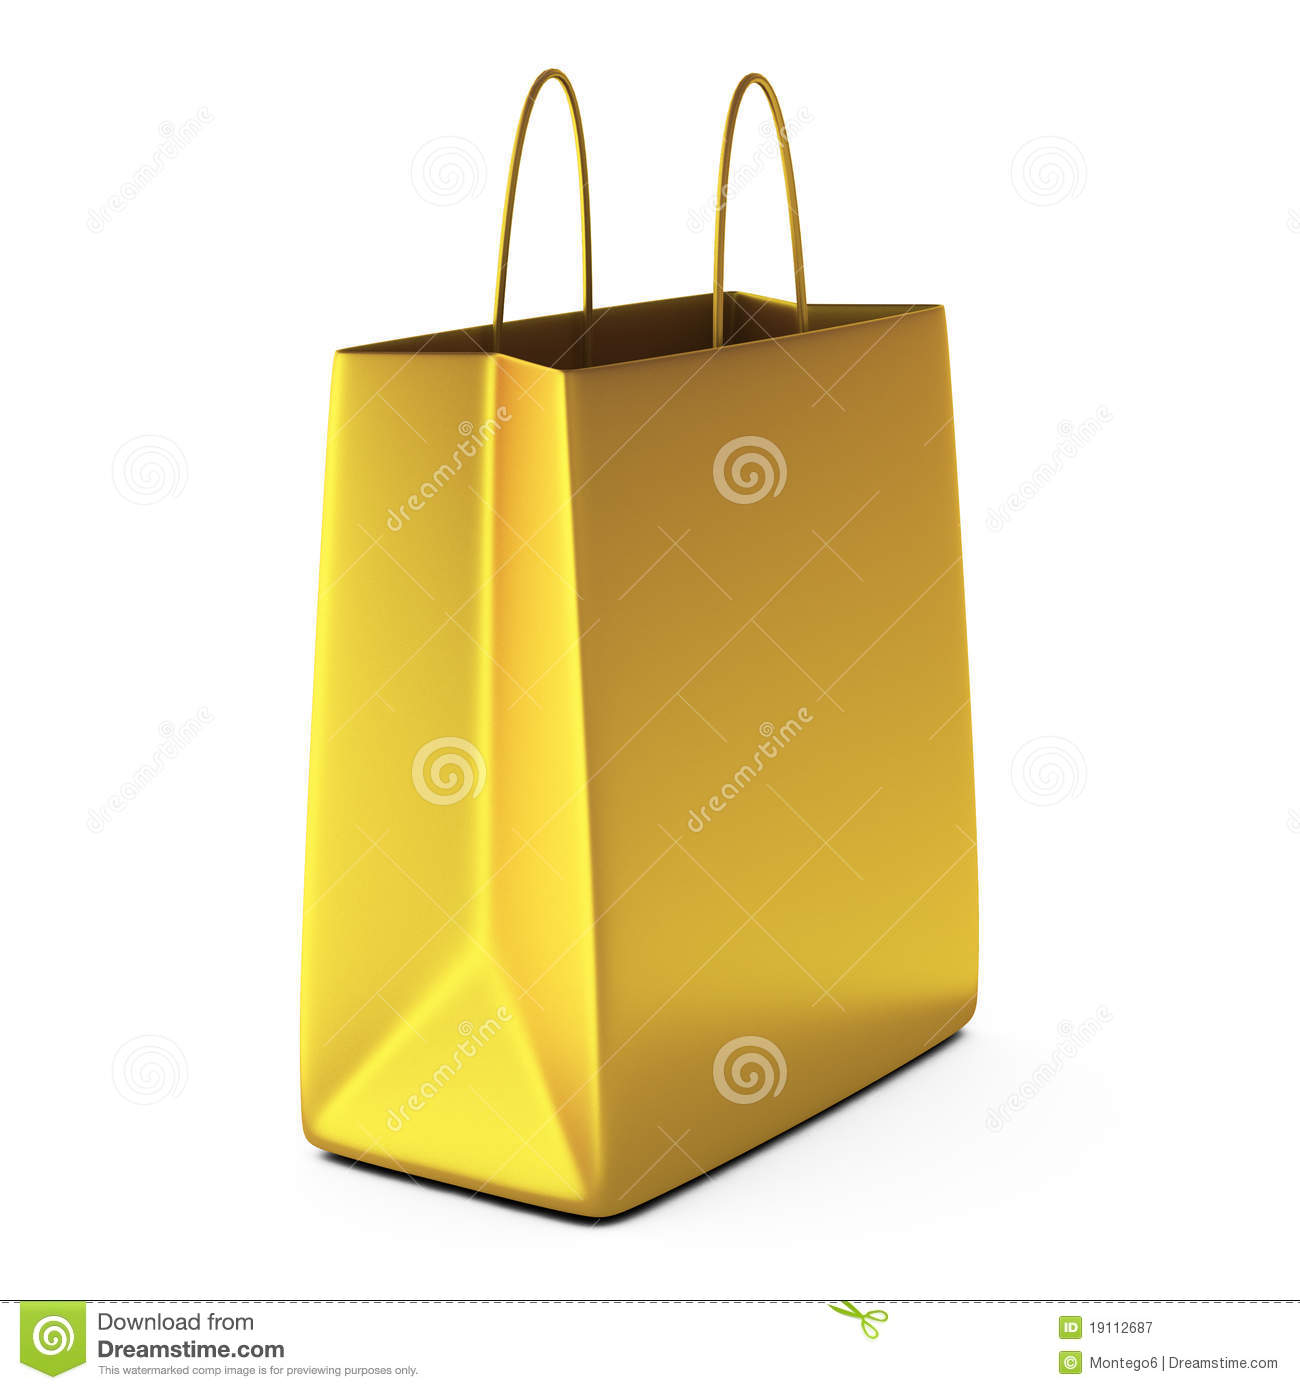 3d Render Of Golden Shopping Bag Royalty Free Stock Photography ...